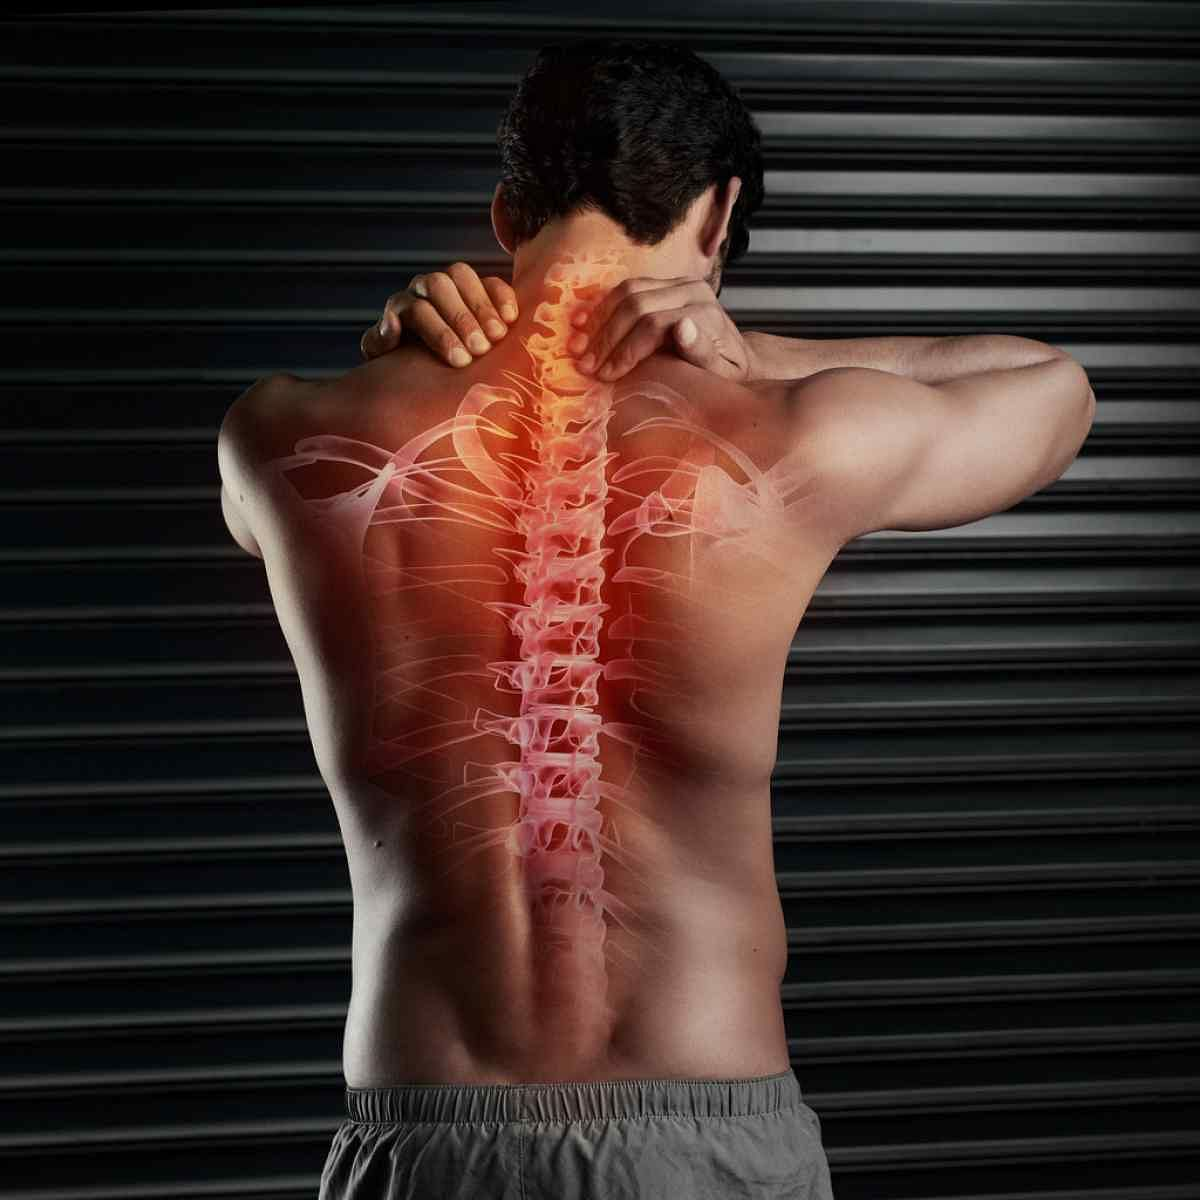 Stressed-out people often  experience neck, shoulder, and back pain.